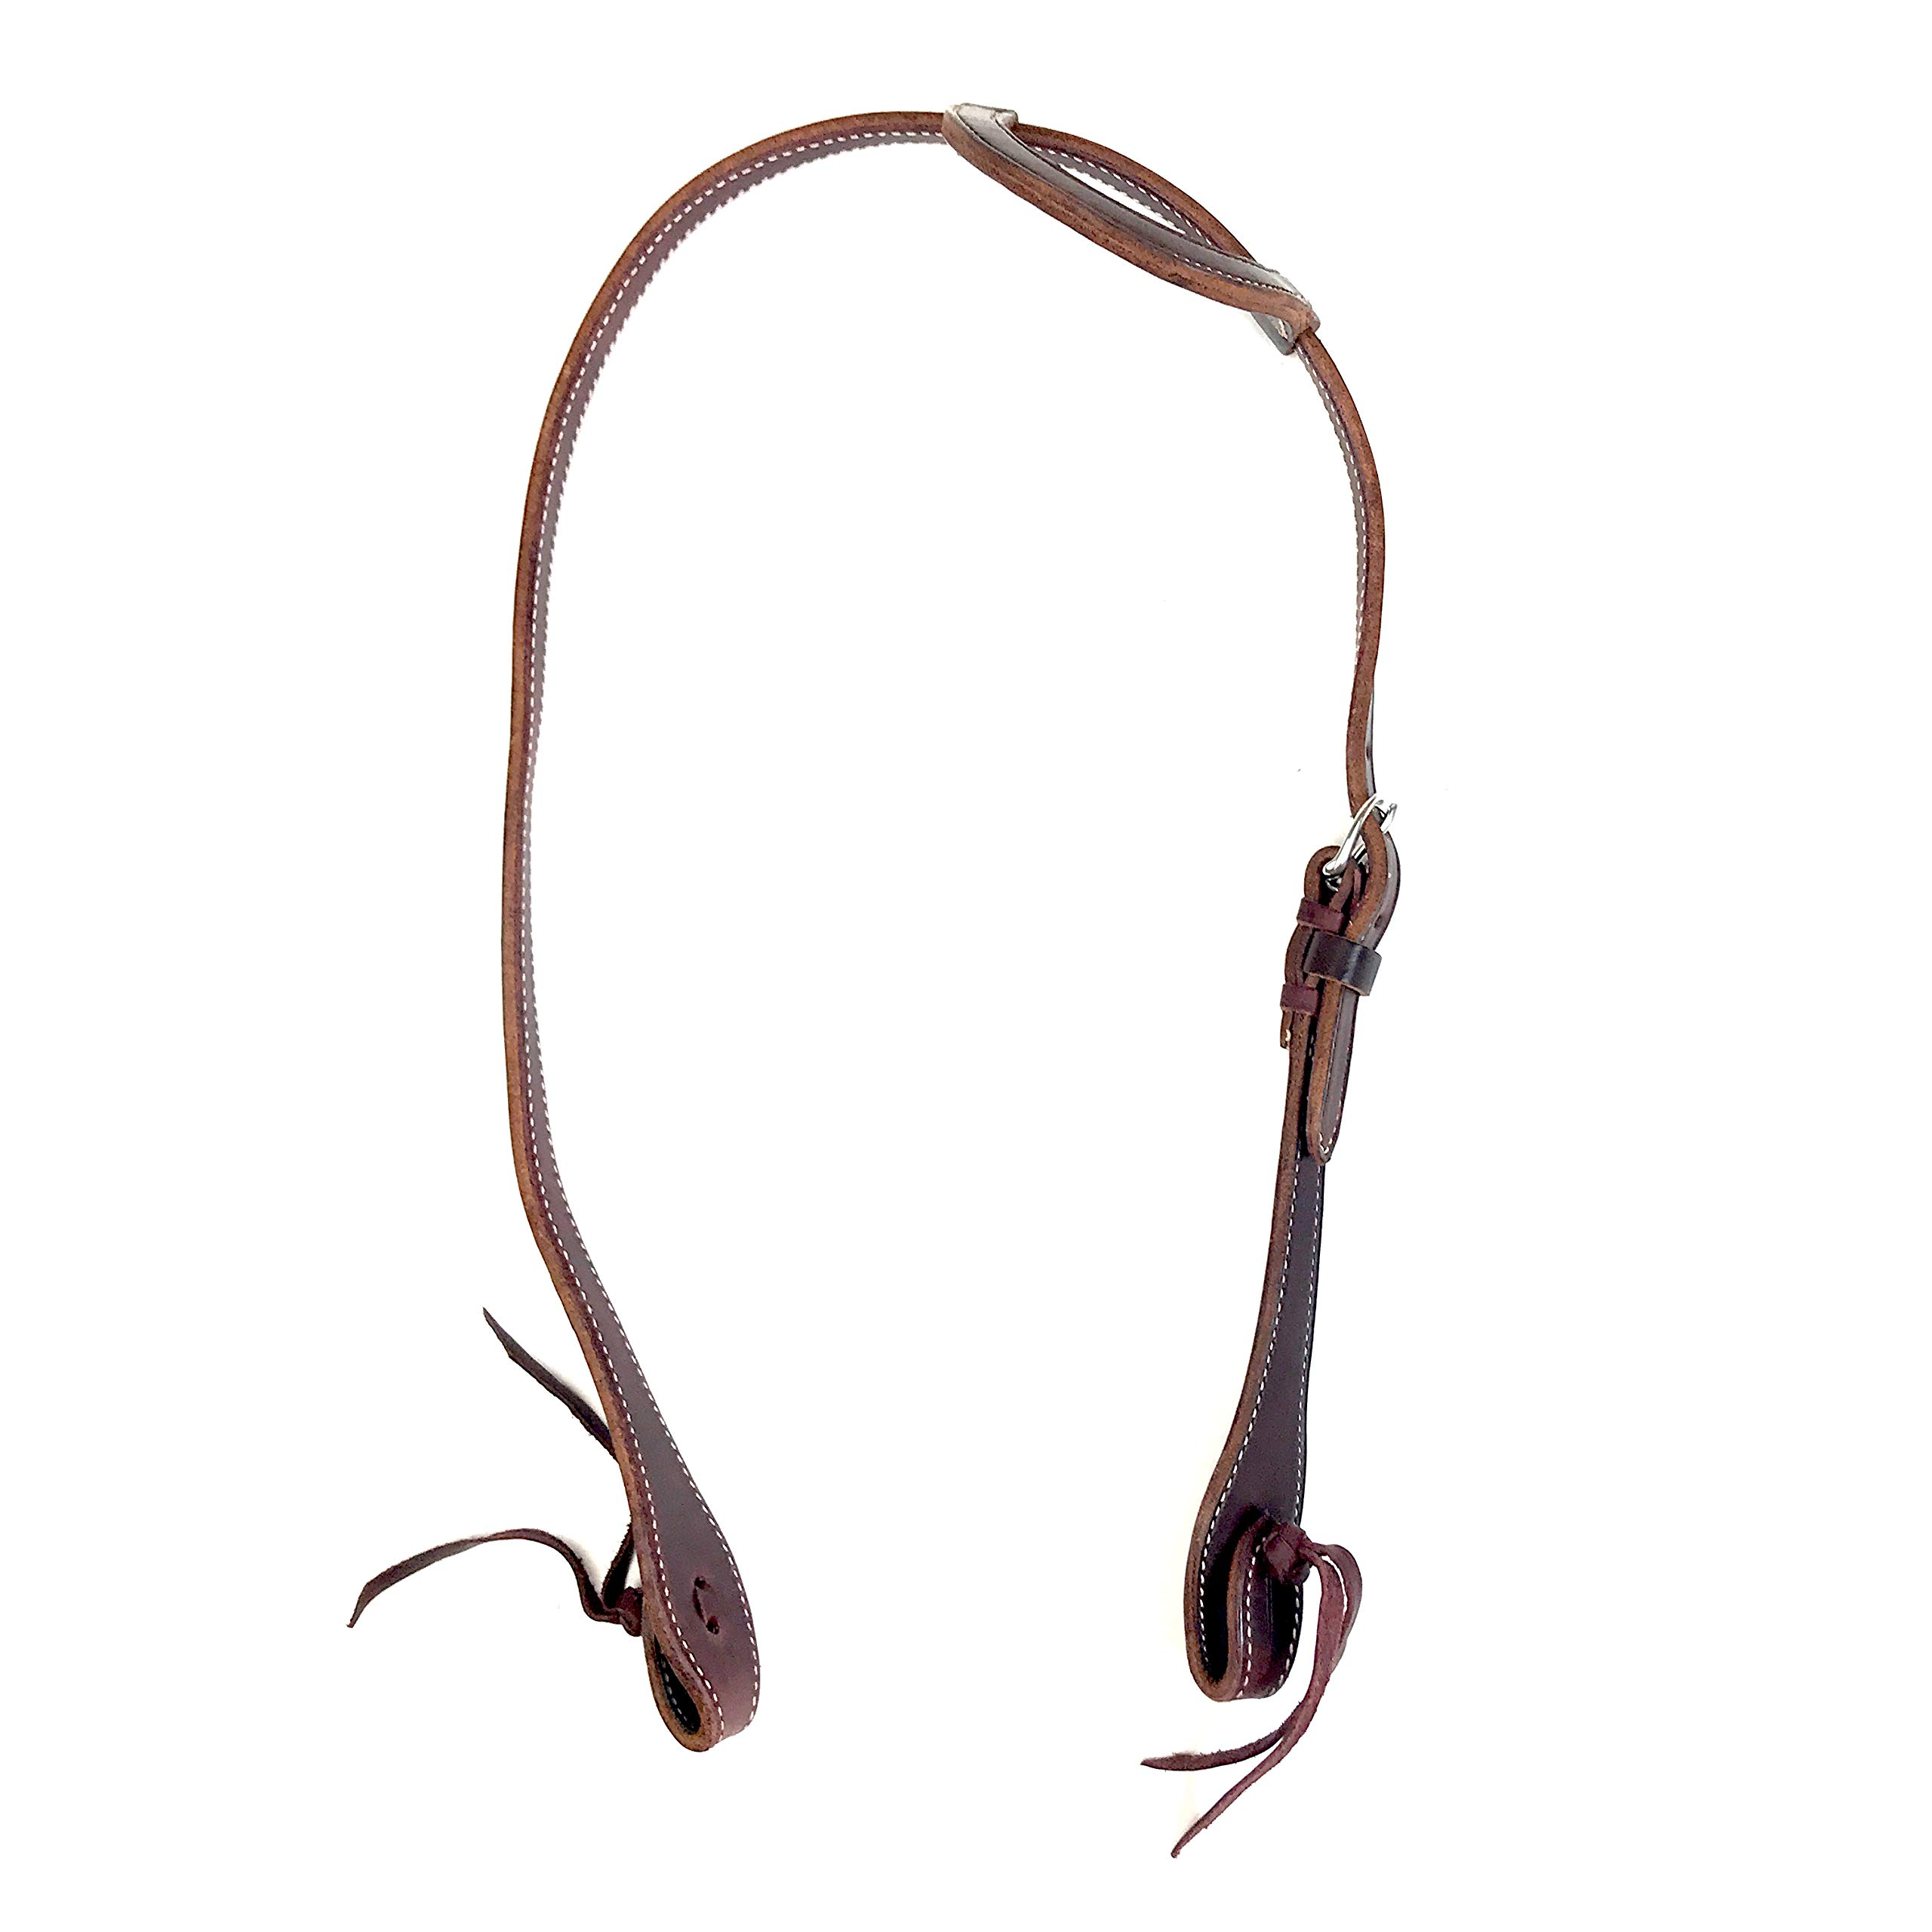 Alamo Saddlery LLC Rancher Supply- 'Elite One Eared Headstall'